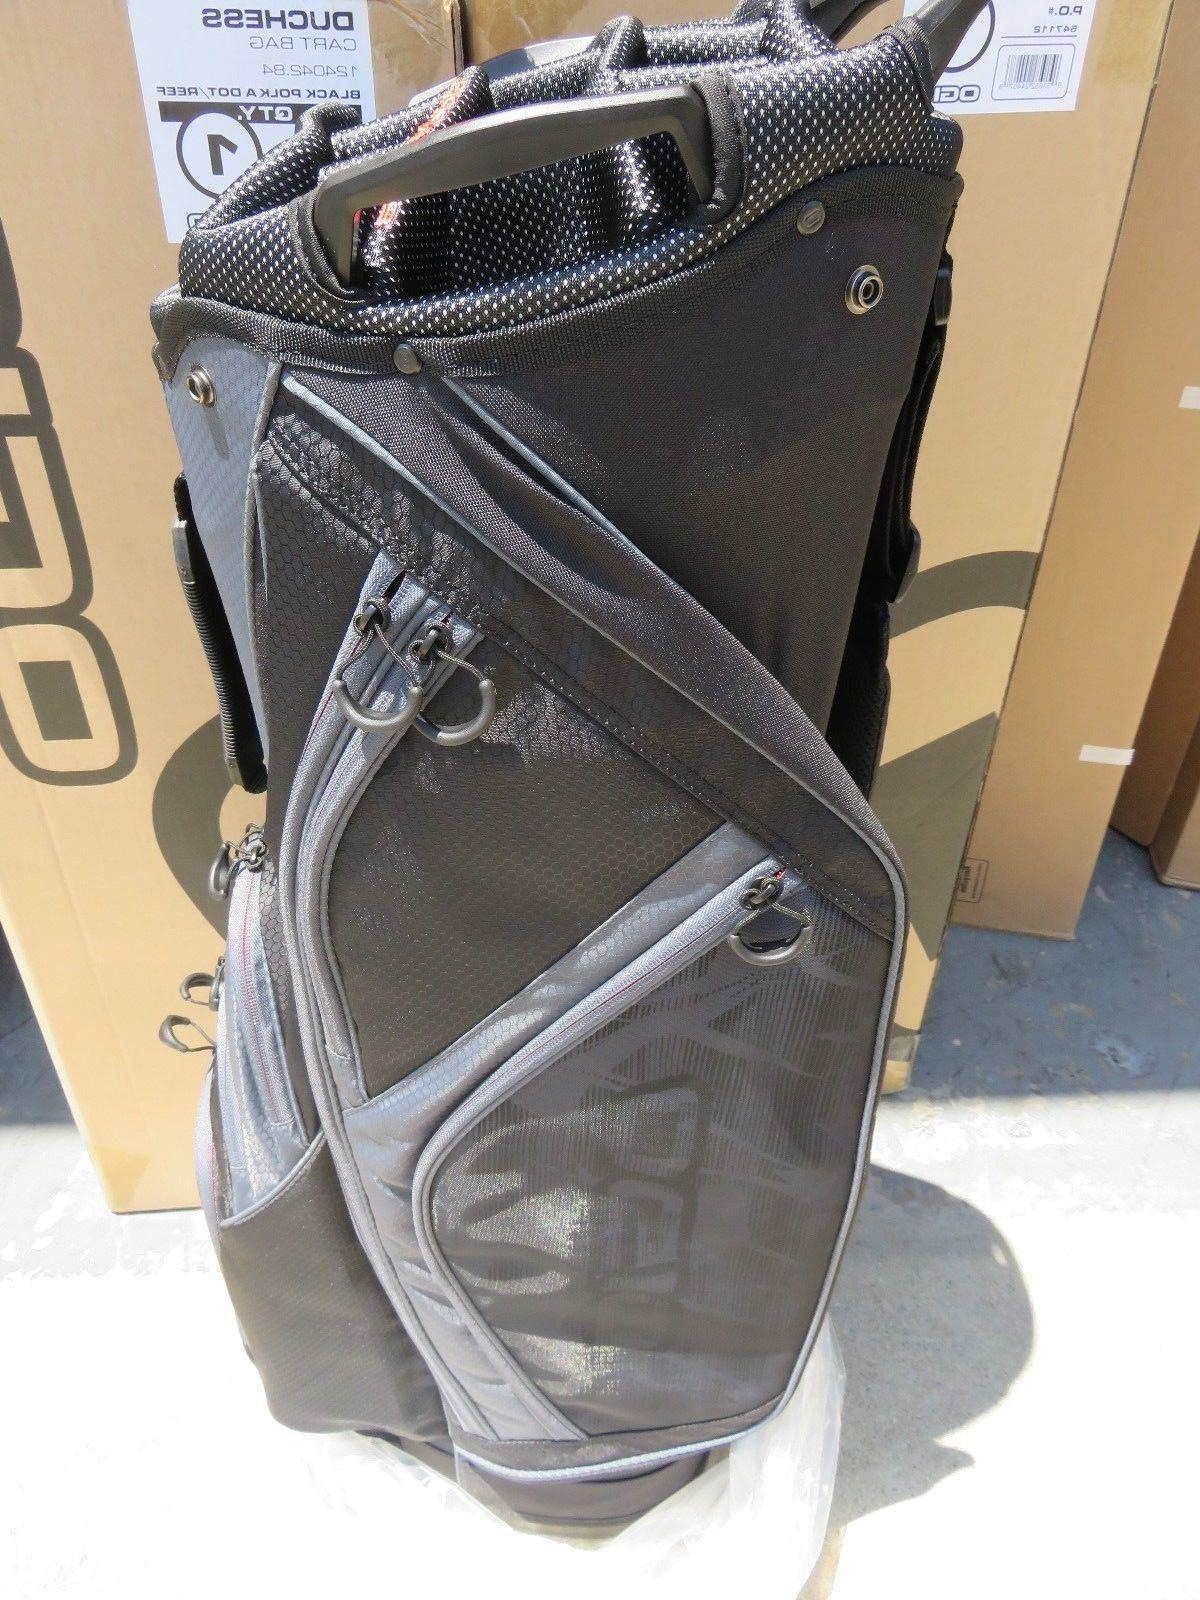 NEW Ogio CIRRUS SOOT Way Divider CART Bag